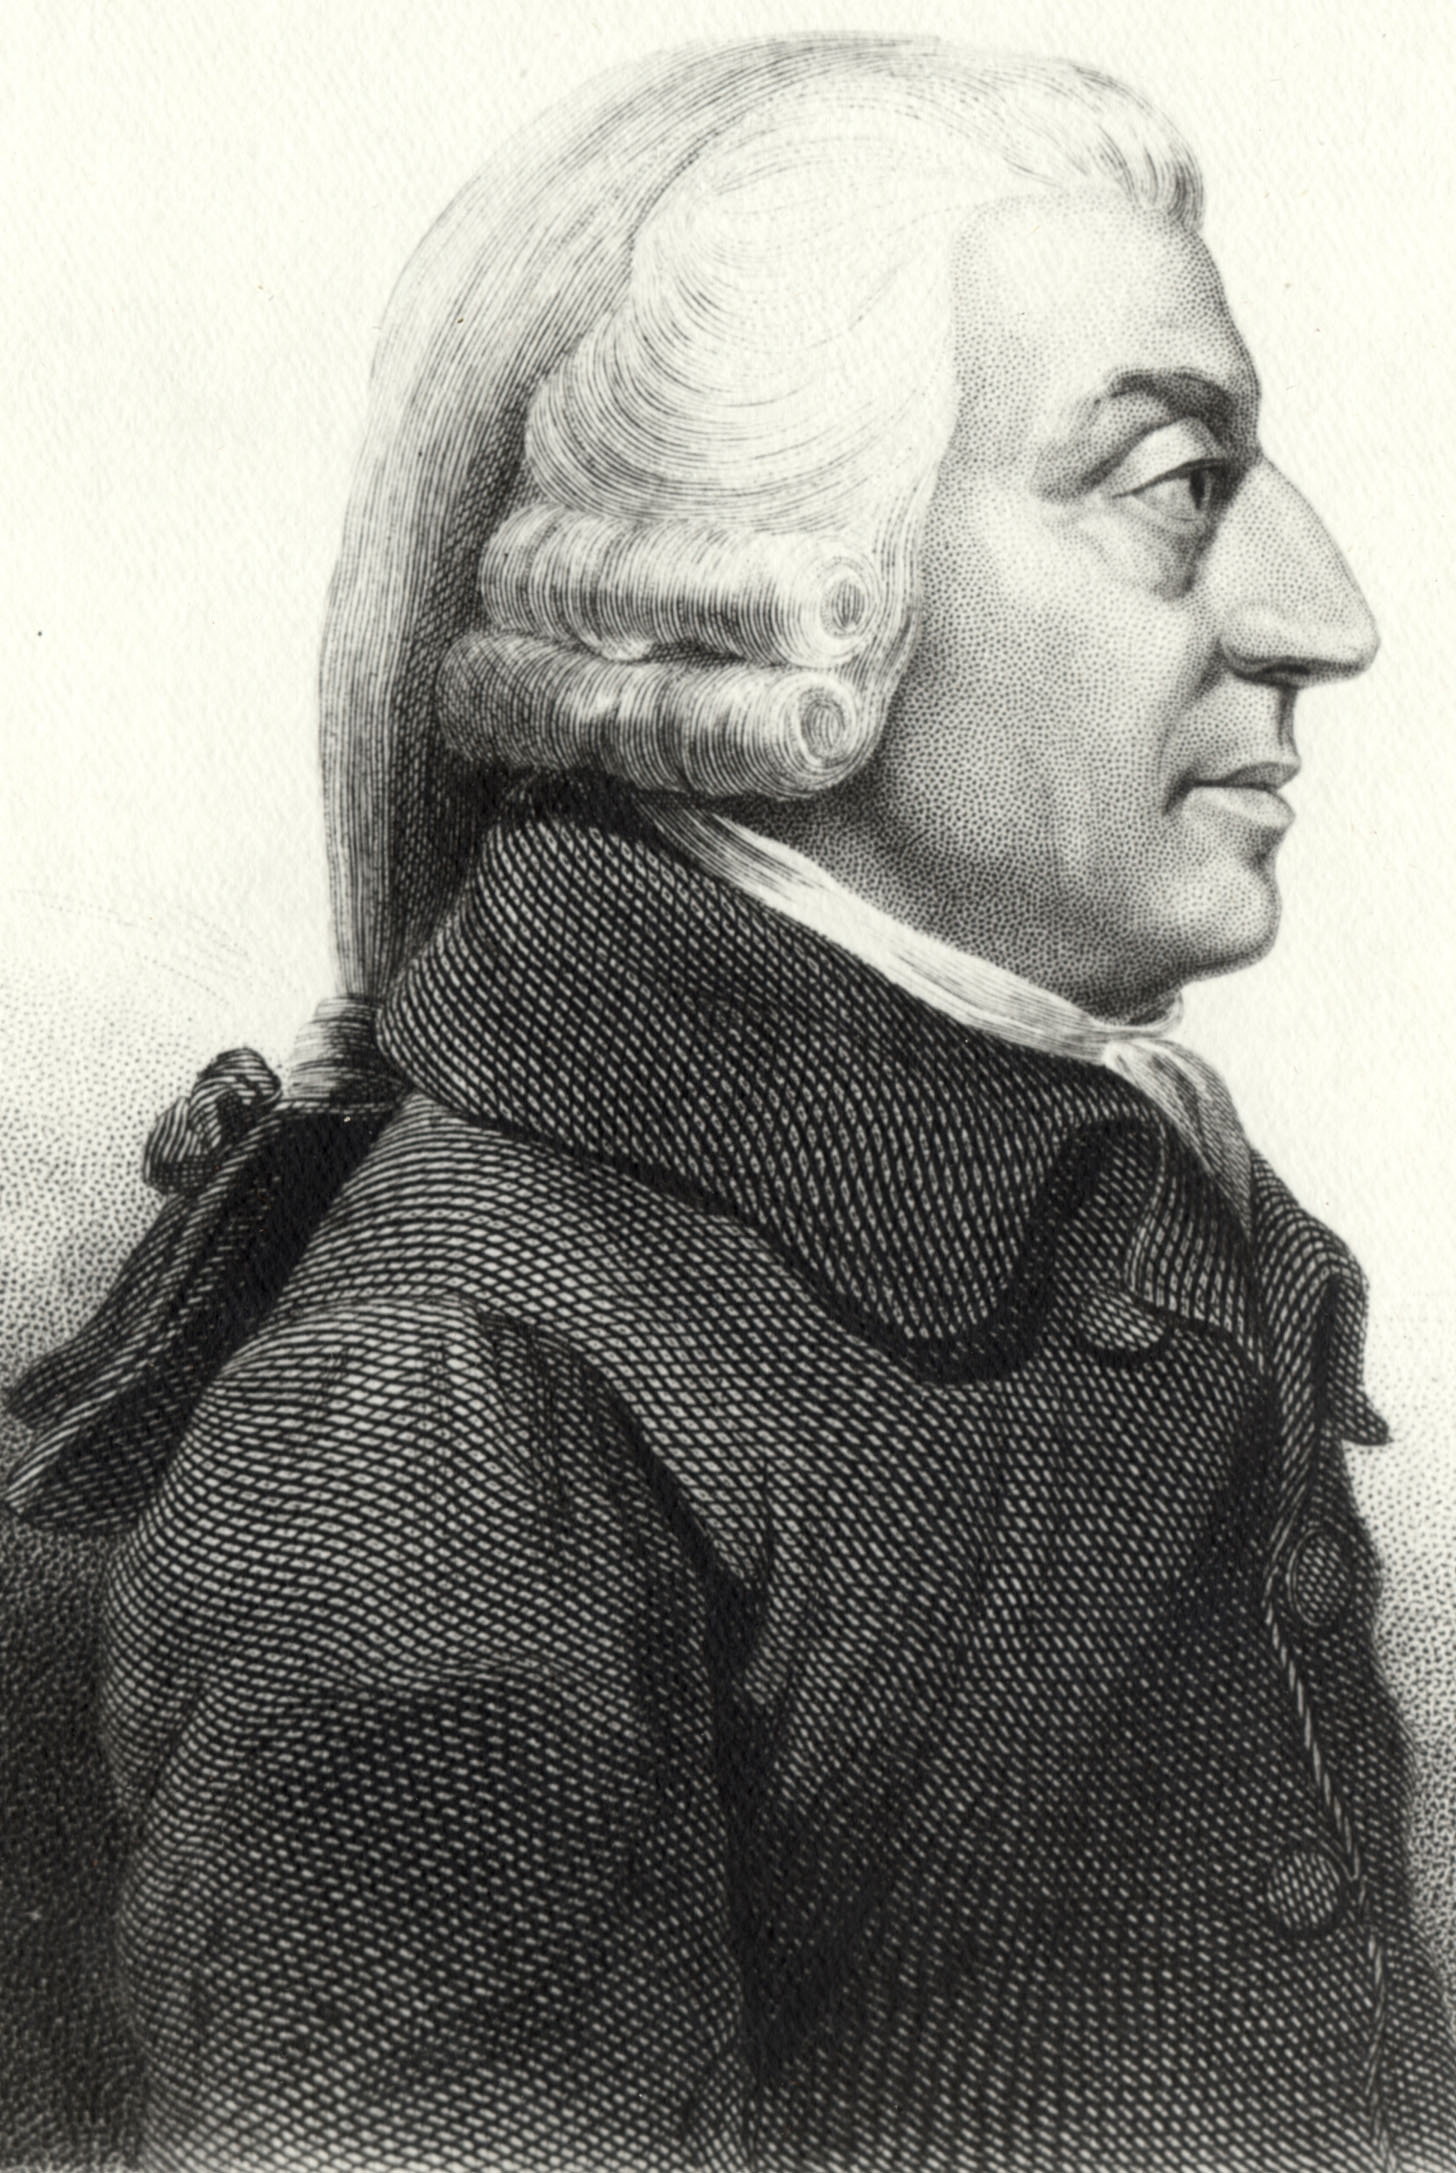 adam essay smith The most well-known modern edition of these essays is that by j r lindgren (ed), the early writings of adam smith (new york: kelley, 1967), which also includes the essay on the formation of languages.